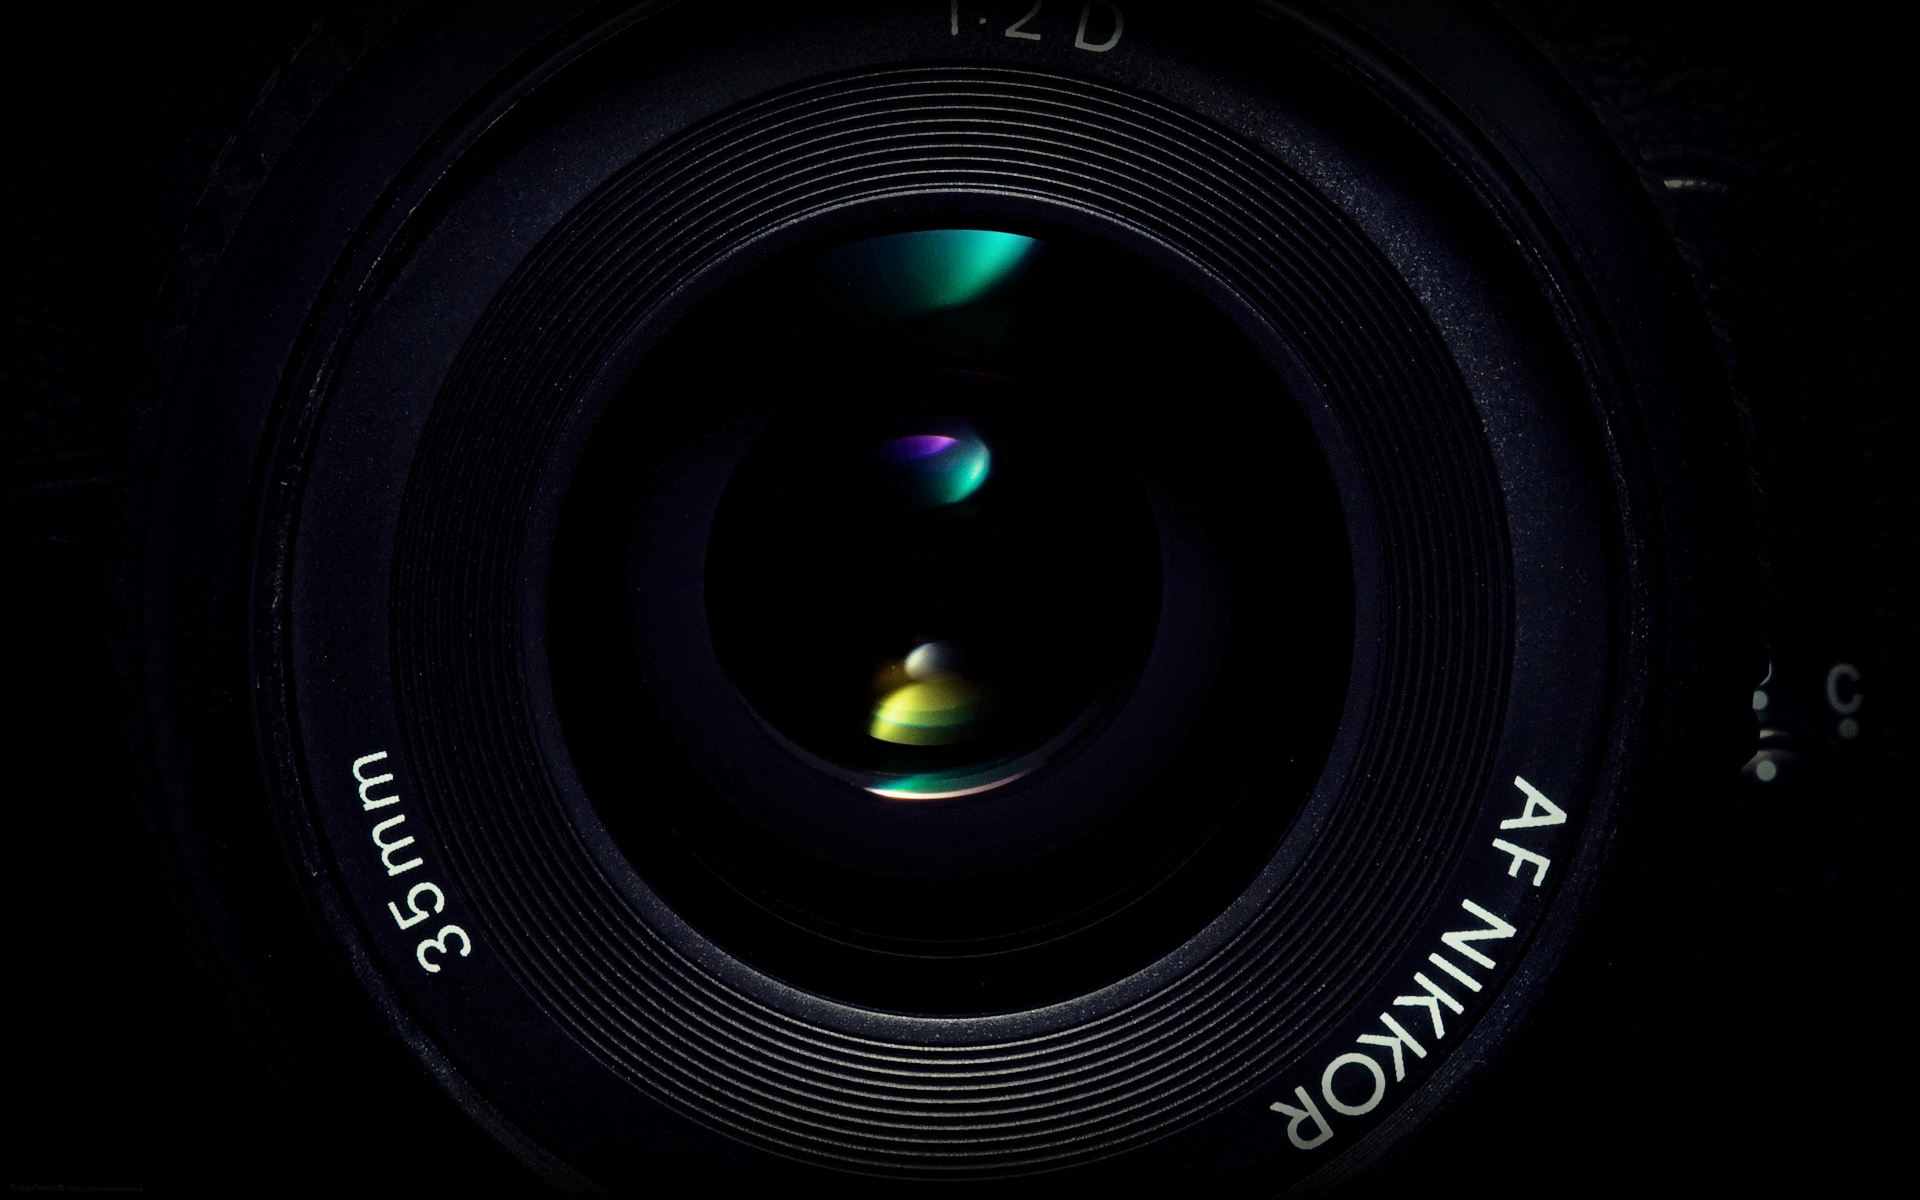 Best Camera Lens Free Background Desktop